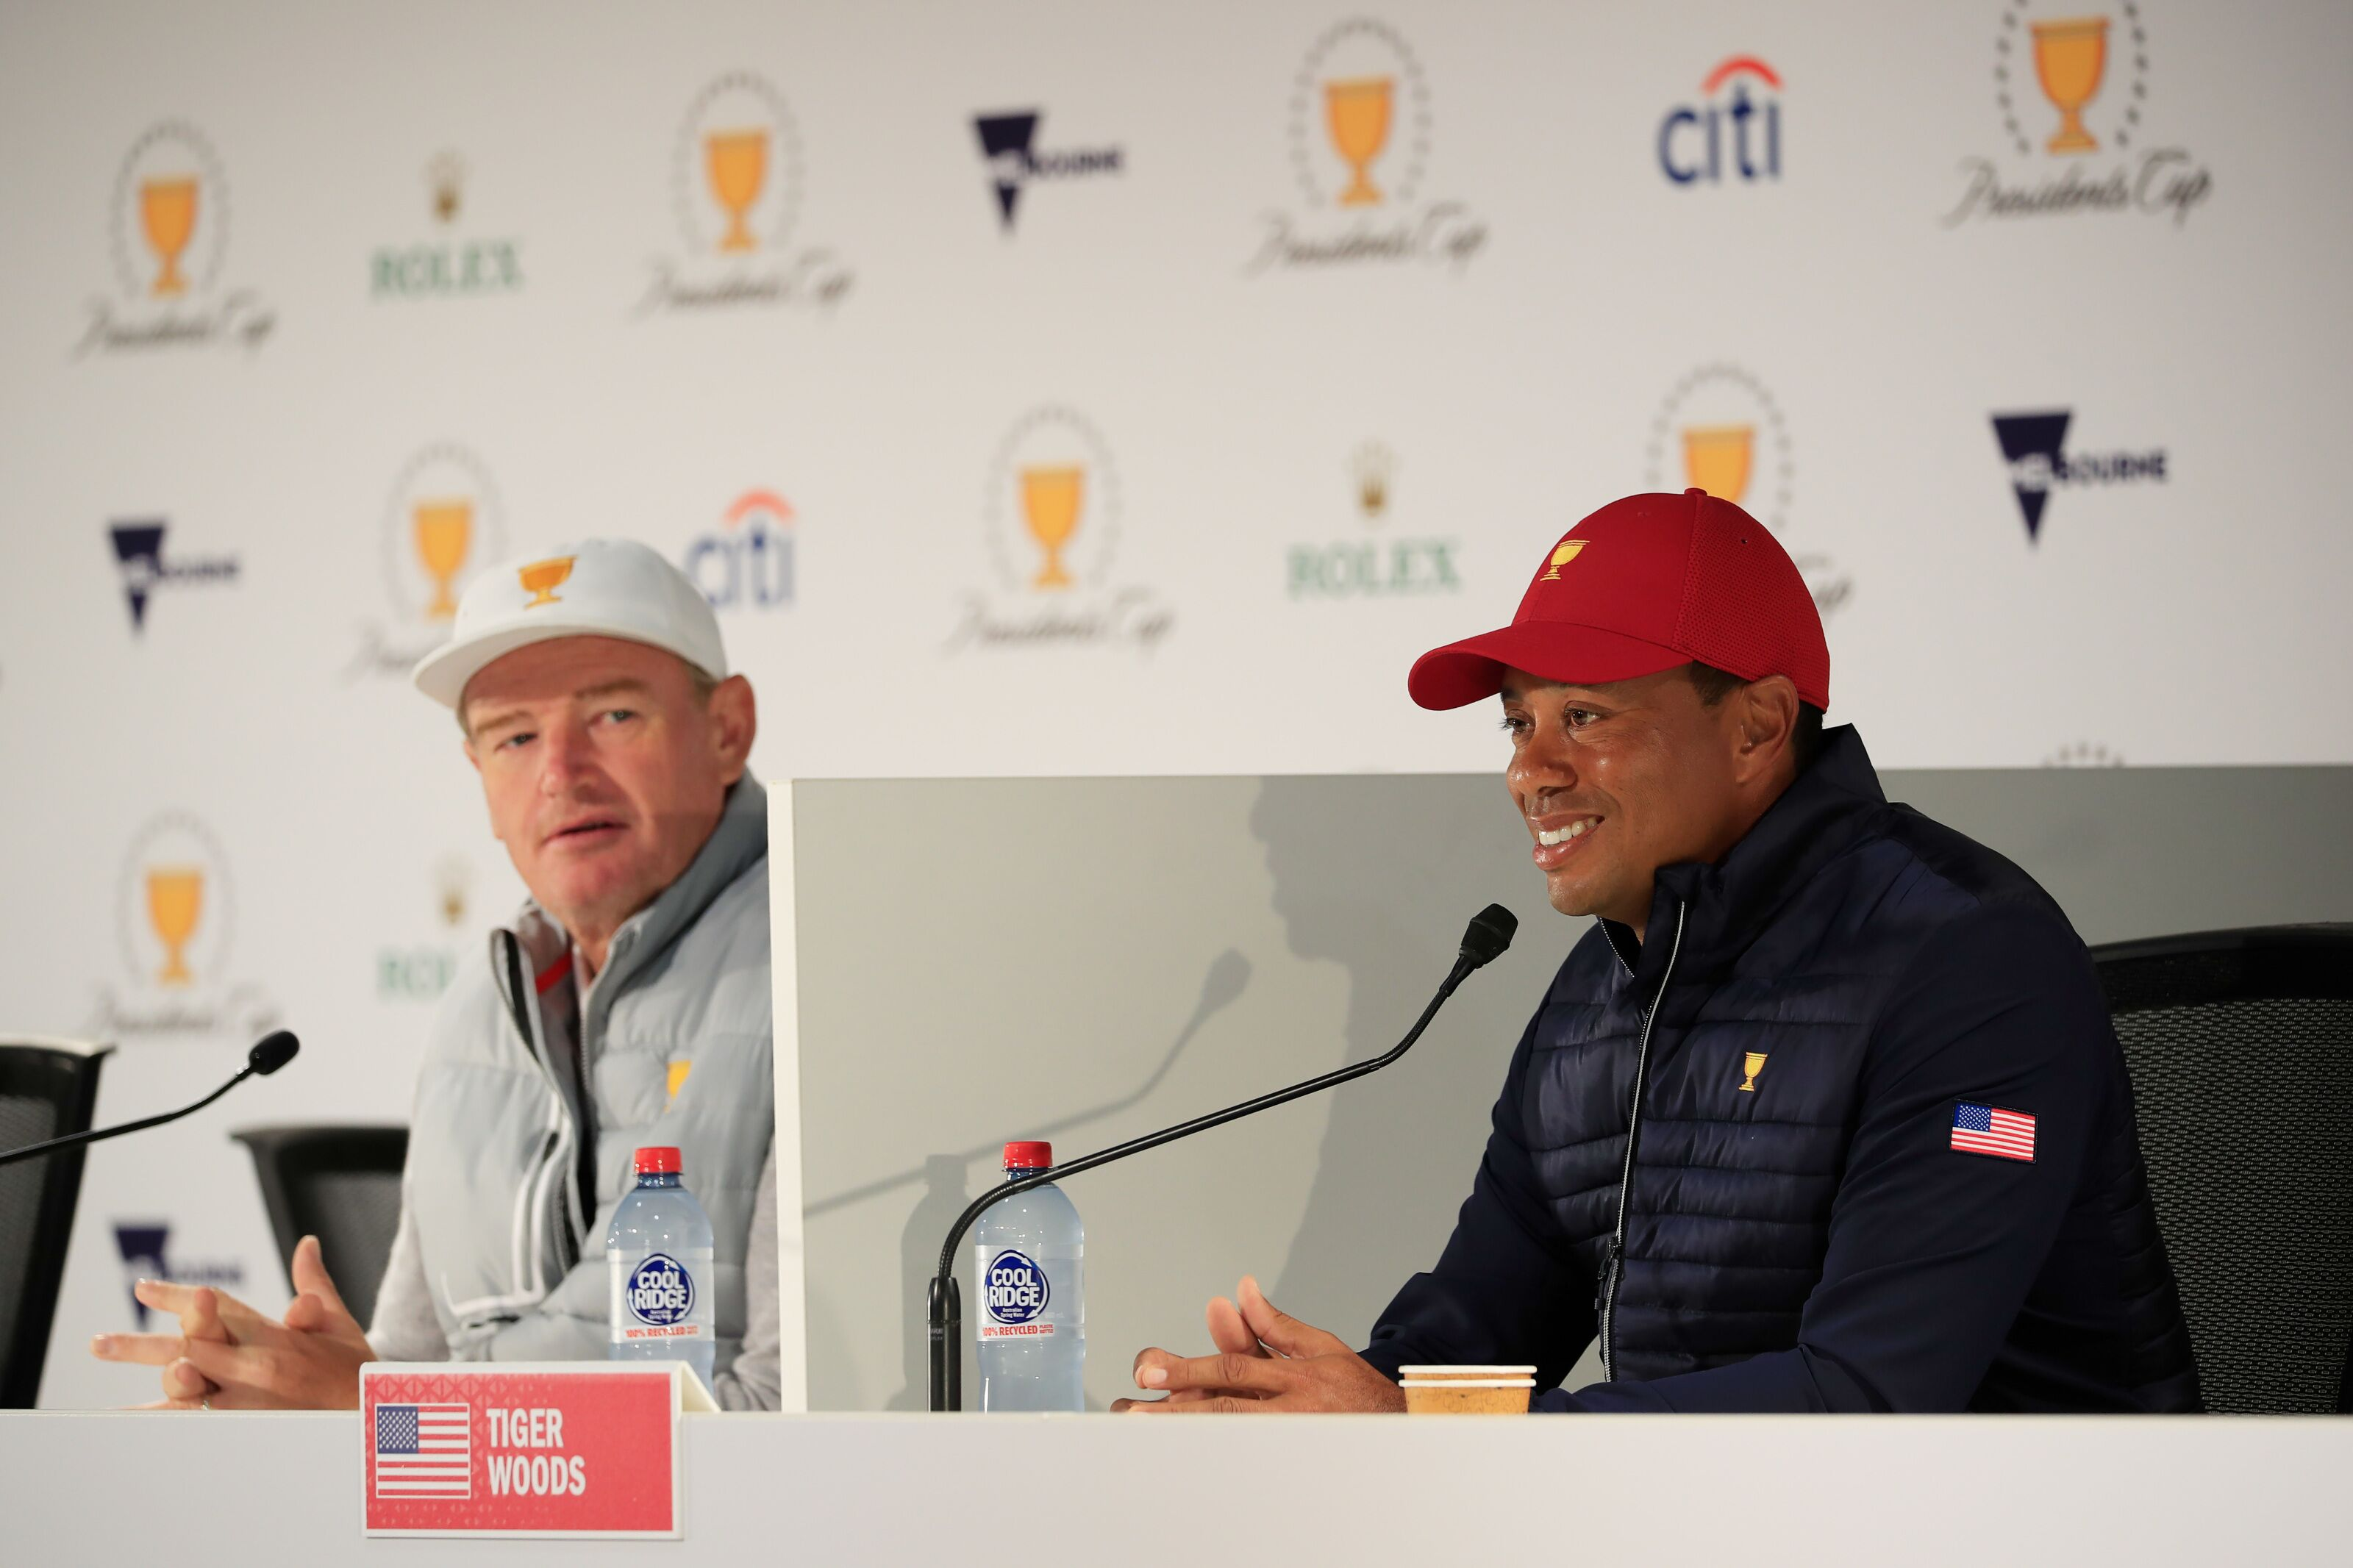 Presidents Cup: Will Ernie Els finish second to Tiger Woods once again?